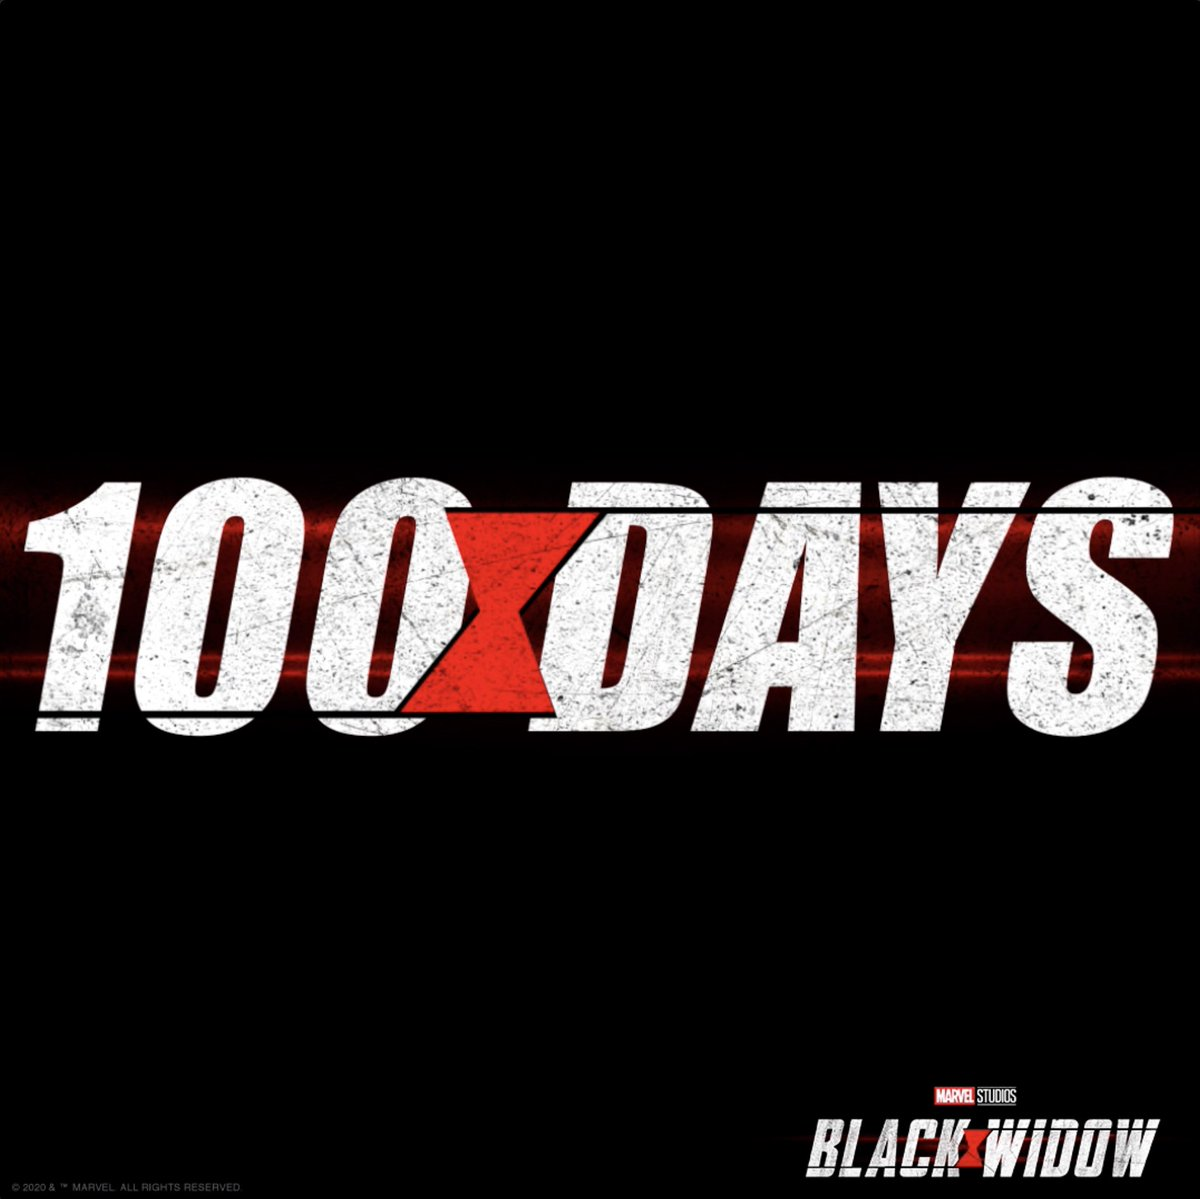 See Marvel Studios' #BlackWidow in theaters in 100 days.